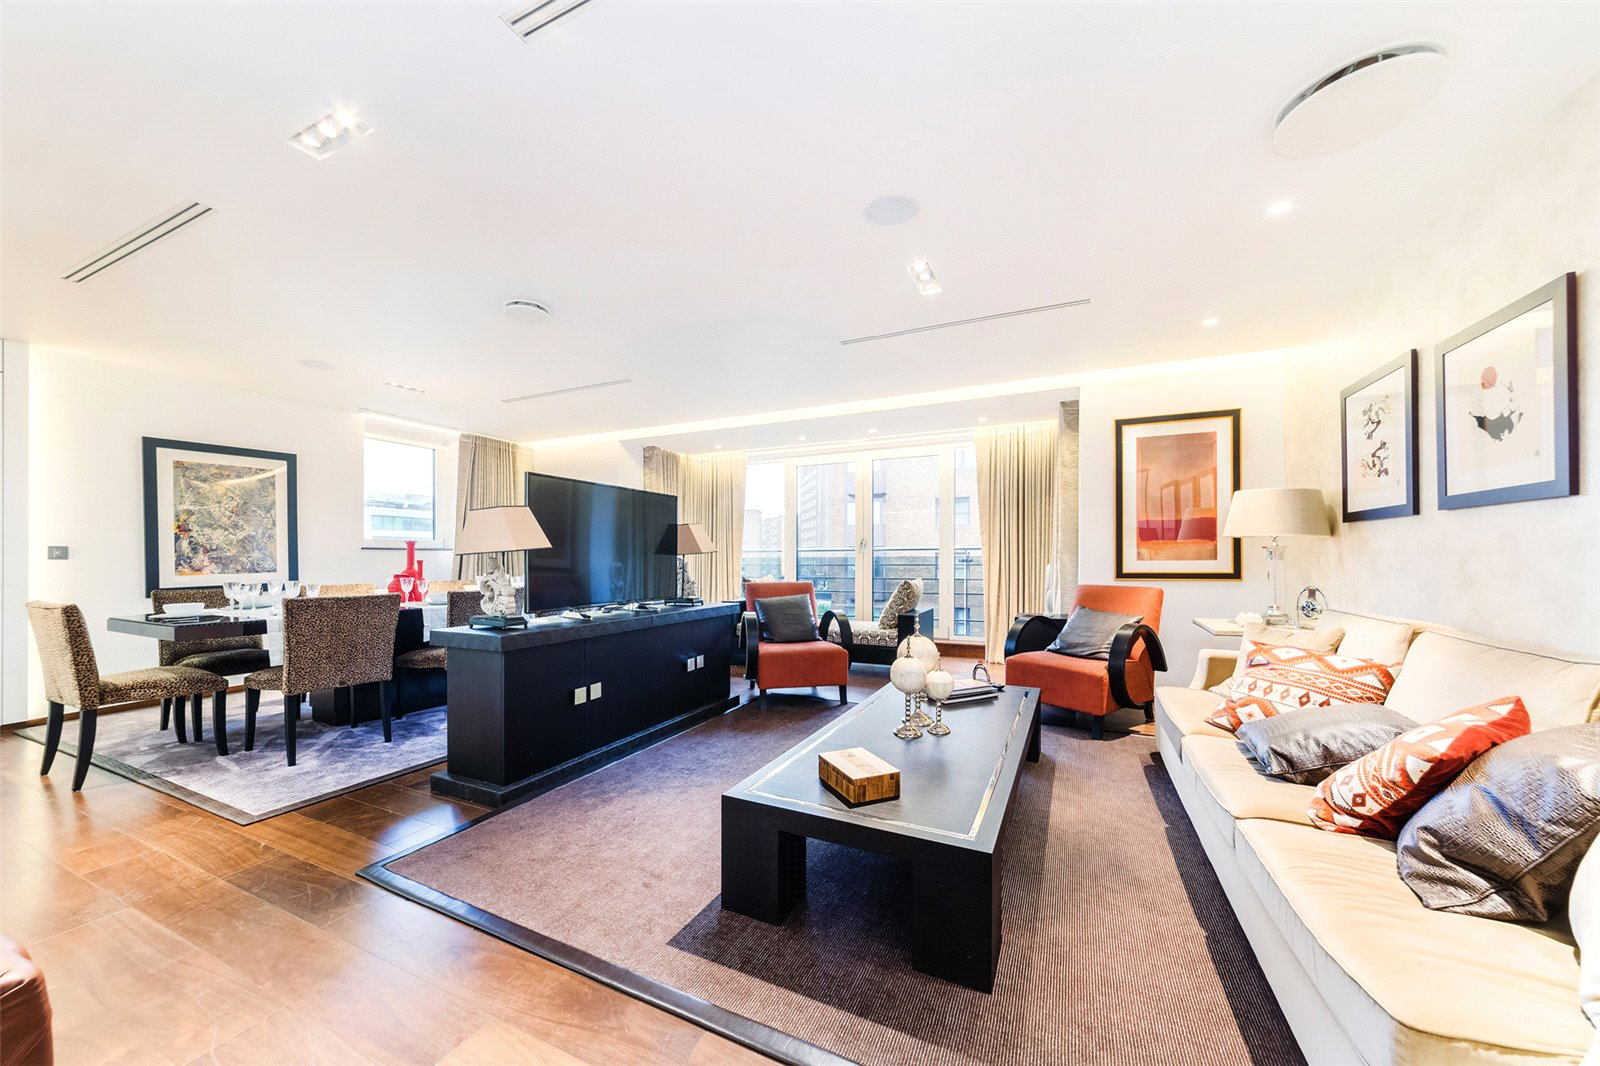 Apartment for Sale at Park Road, St John's Wood, London, NW8 Park Road, St John's Wood, London, NW8